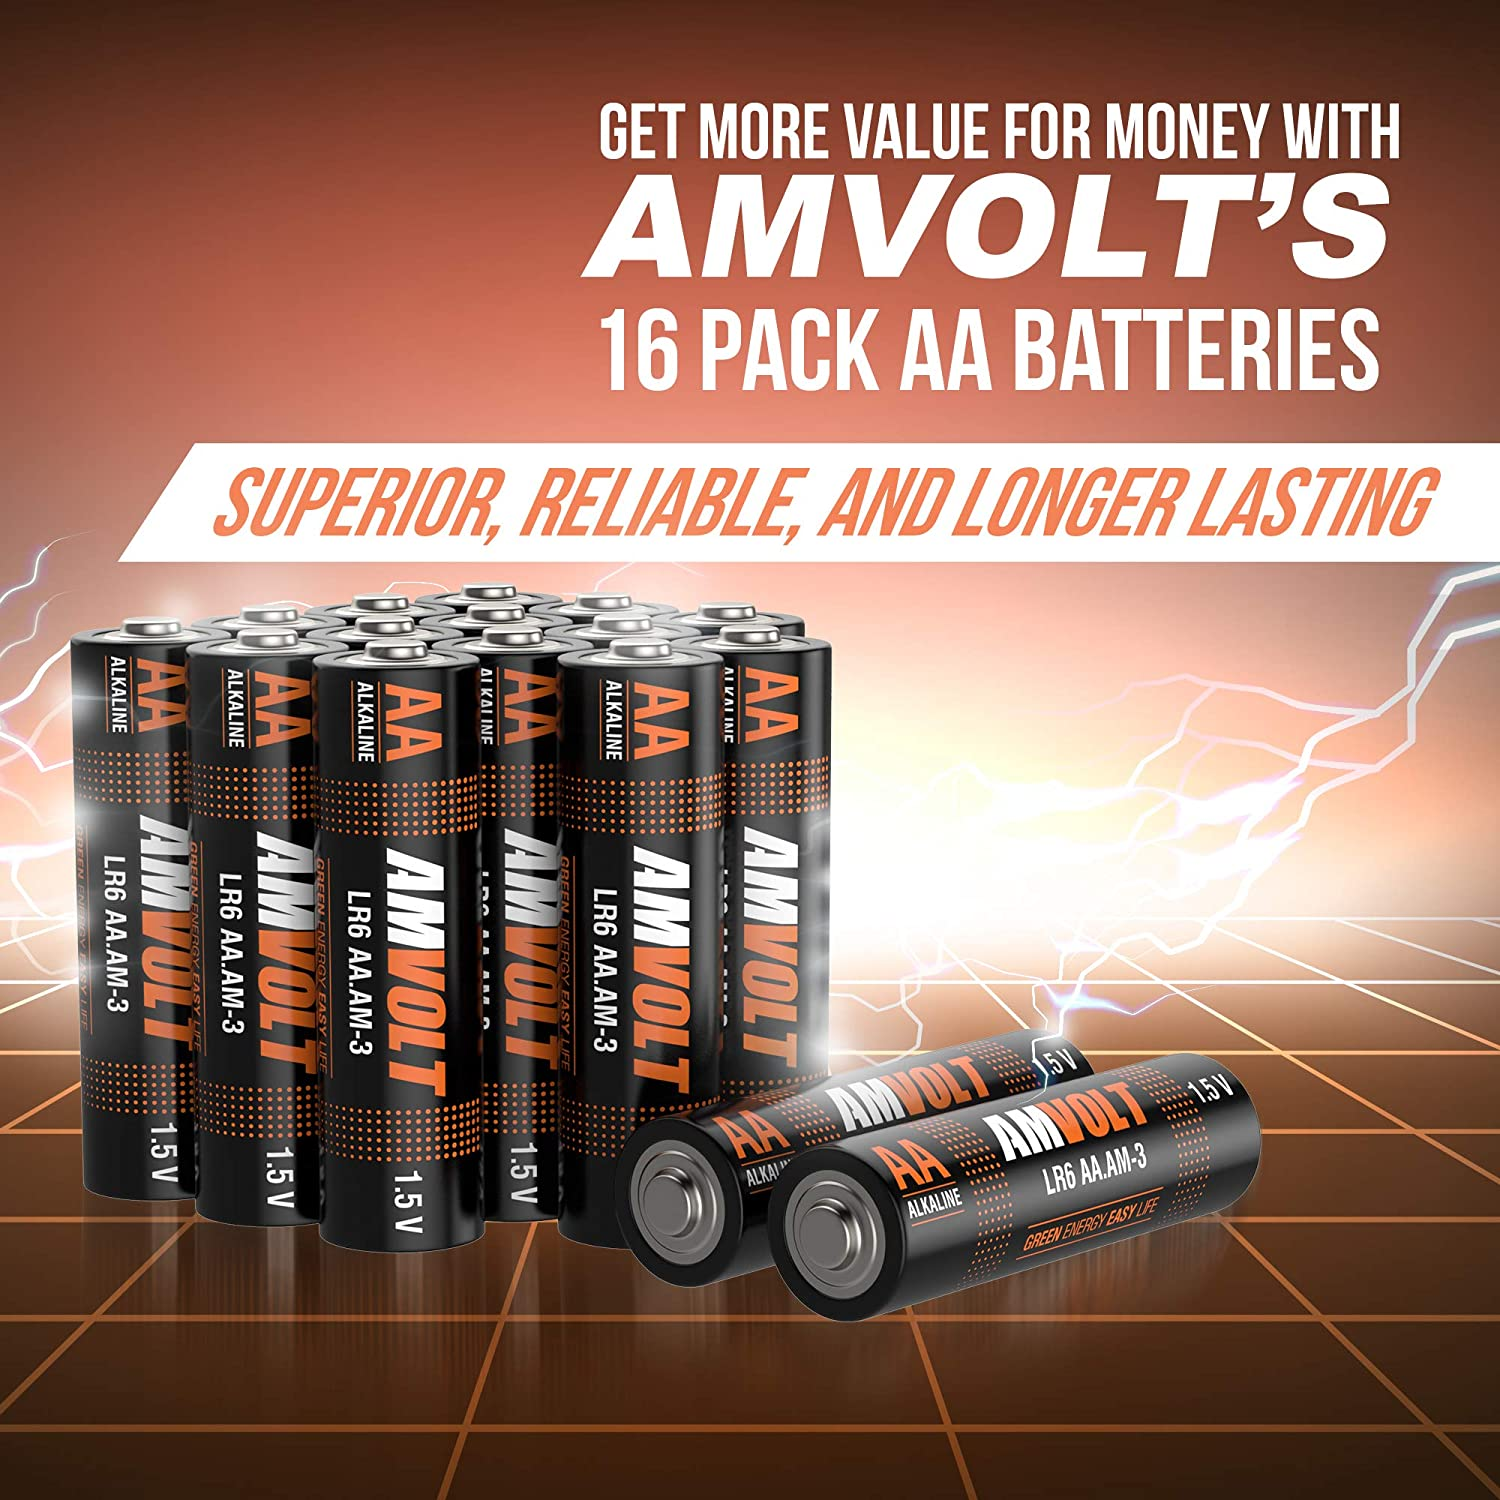 Exp. 2028 16 Pack AA Batteries Premium LR6 Alkaline Battery 1.5 Volt Non Rechargeable Batteries for Watches Clocks Remotes Games Controllers Toys Ultra Power